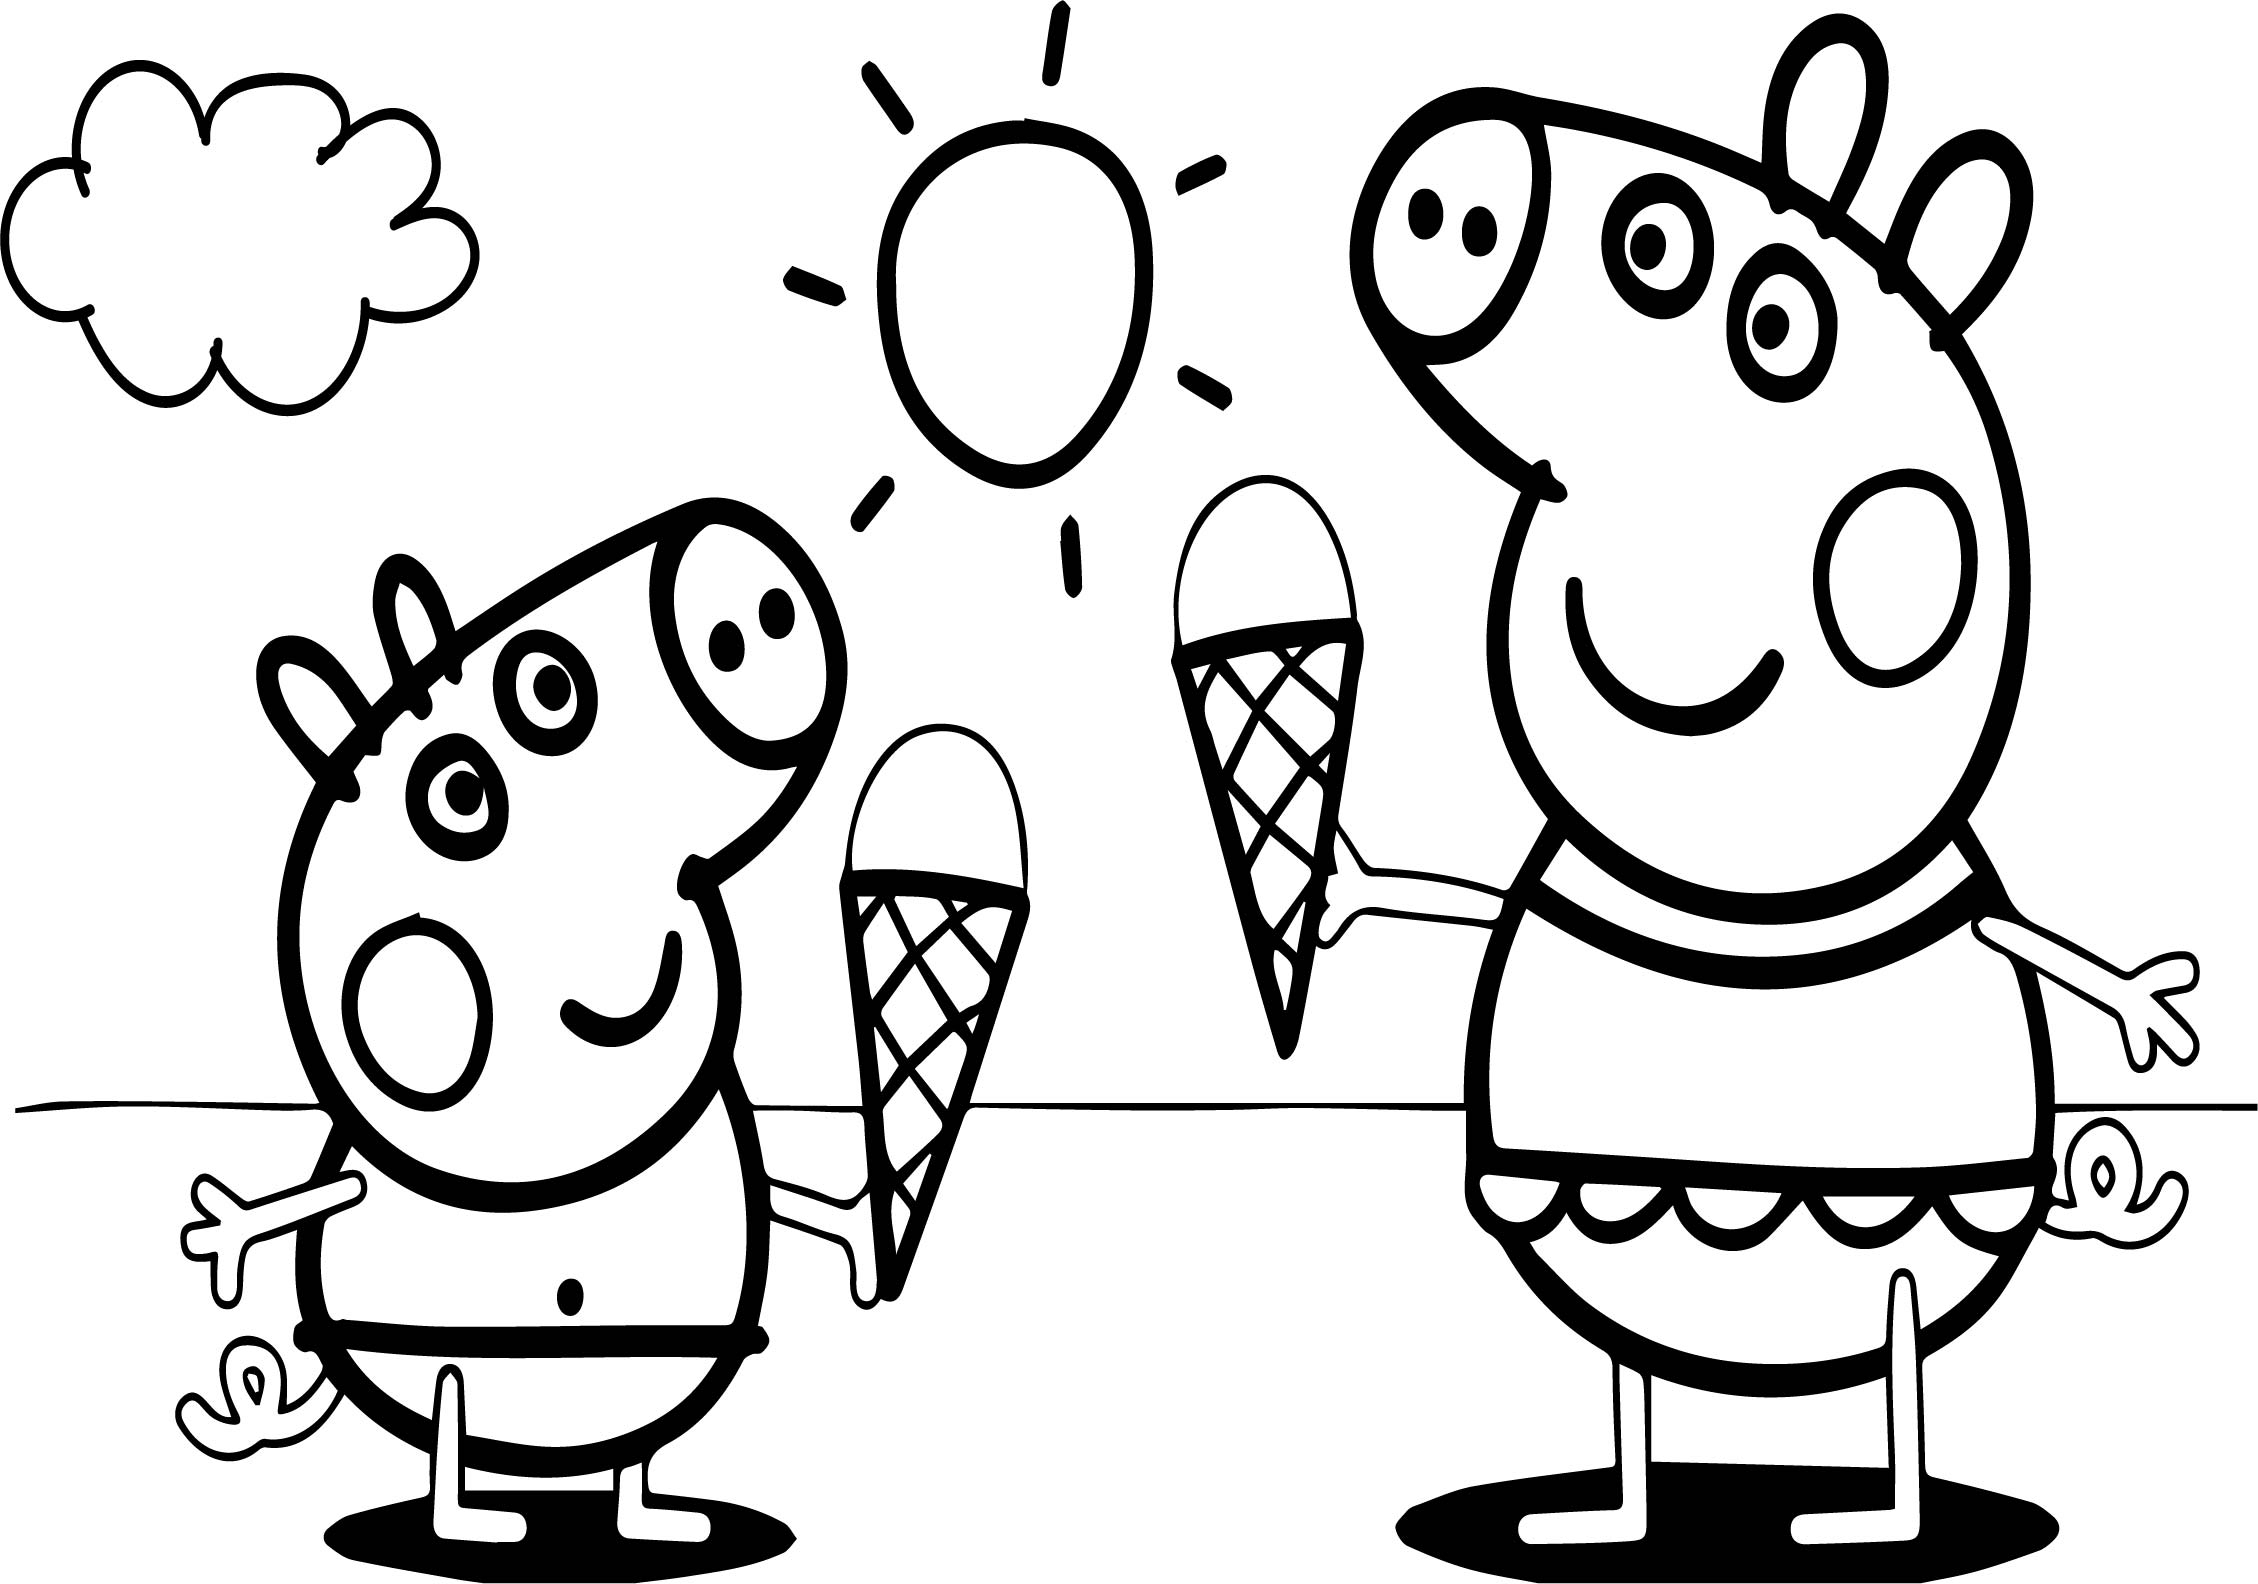 free peppa pig coloring pages - peppa pig video free coloring page